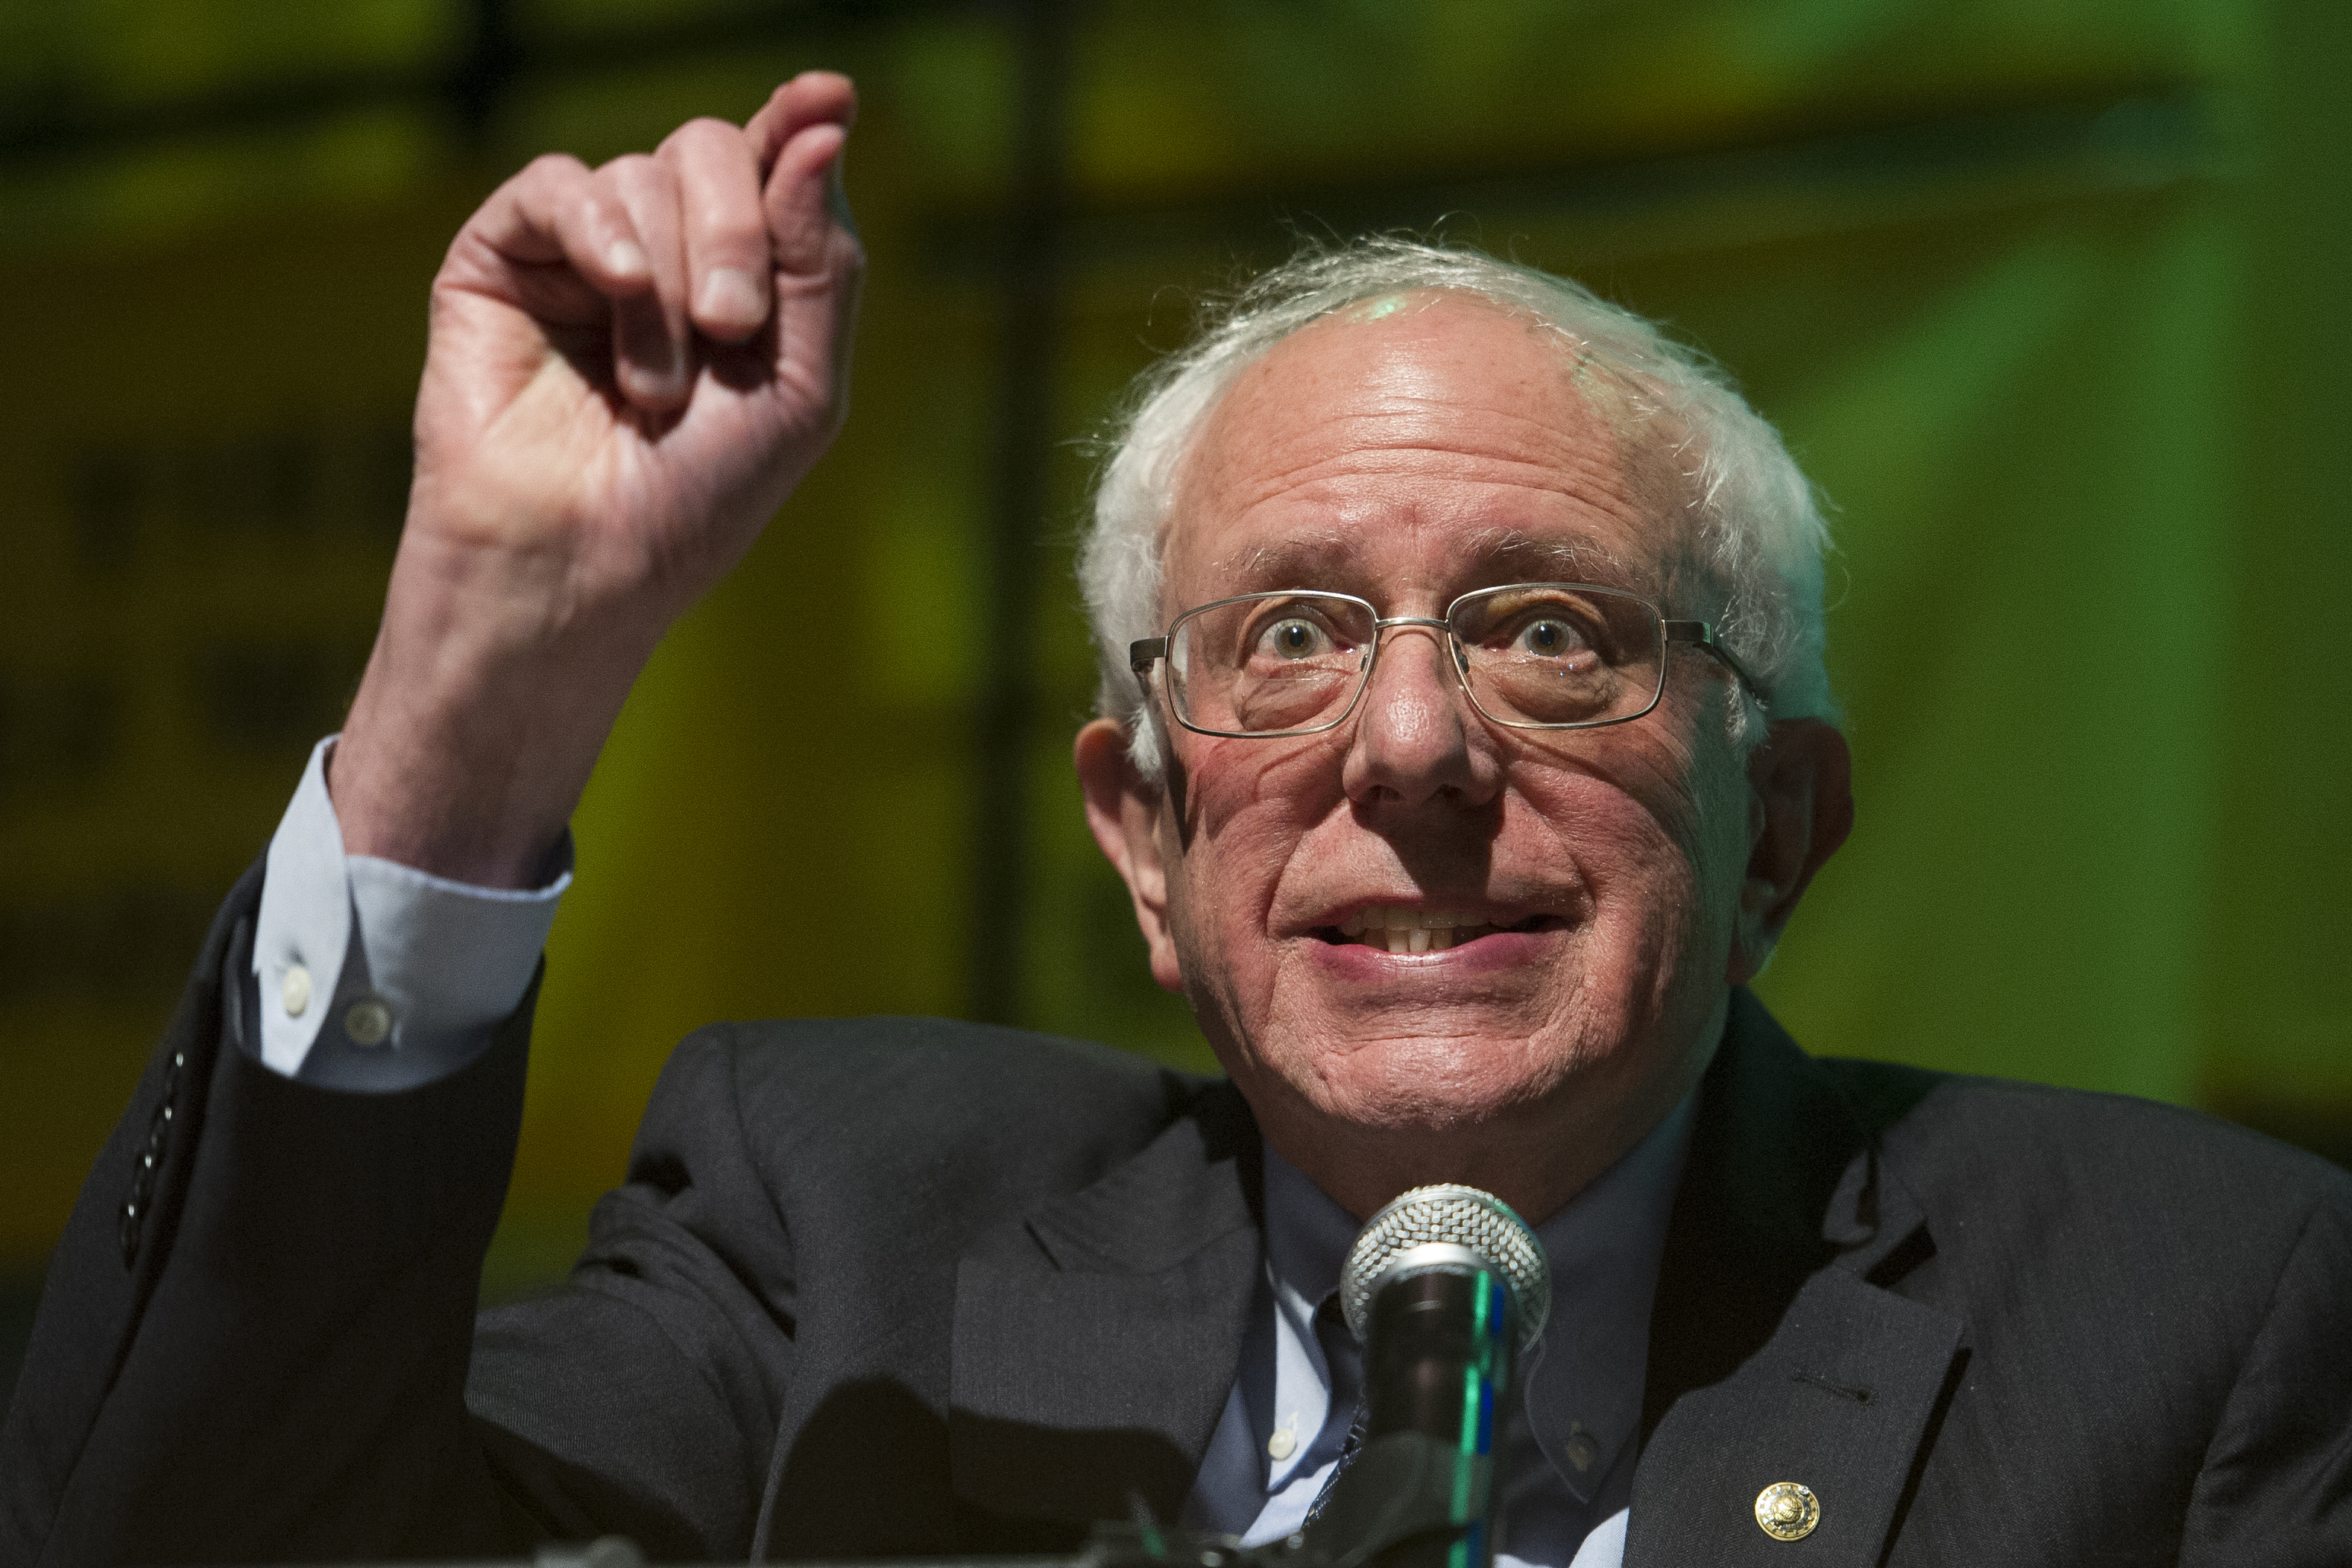 Bernie Sanders vows to nominate Supreme Court justices who support abortion